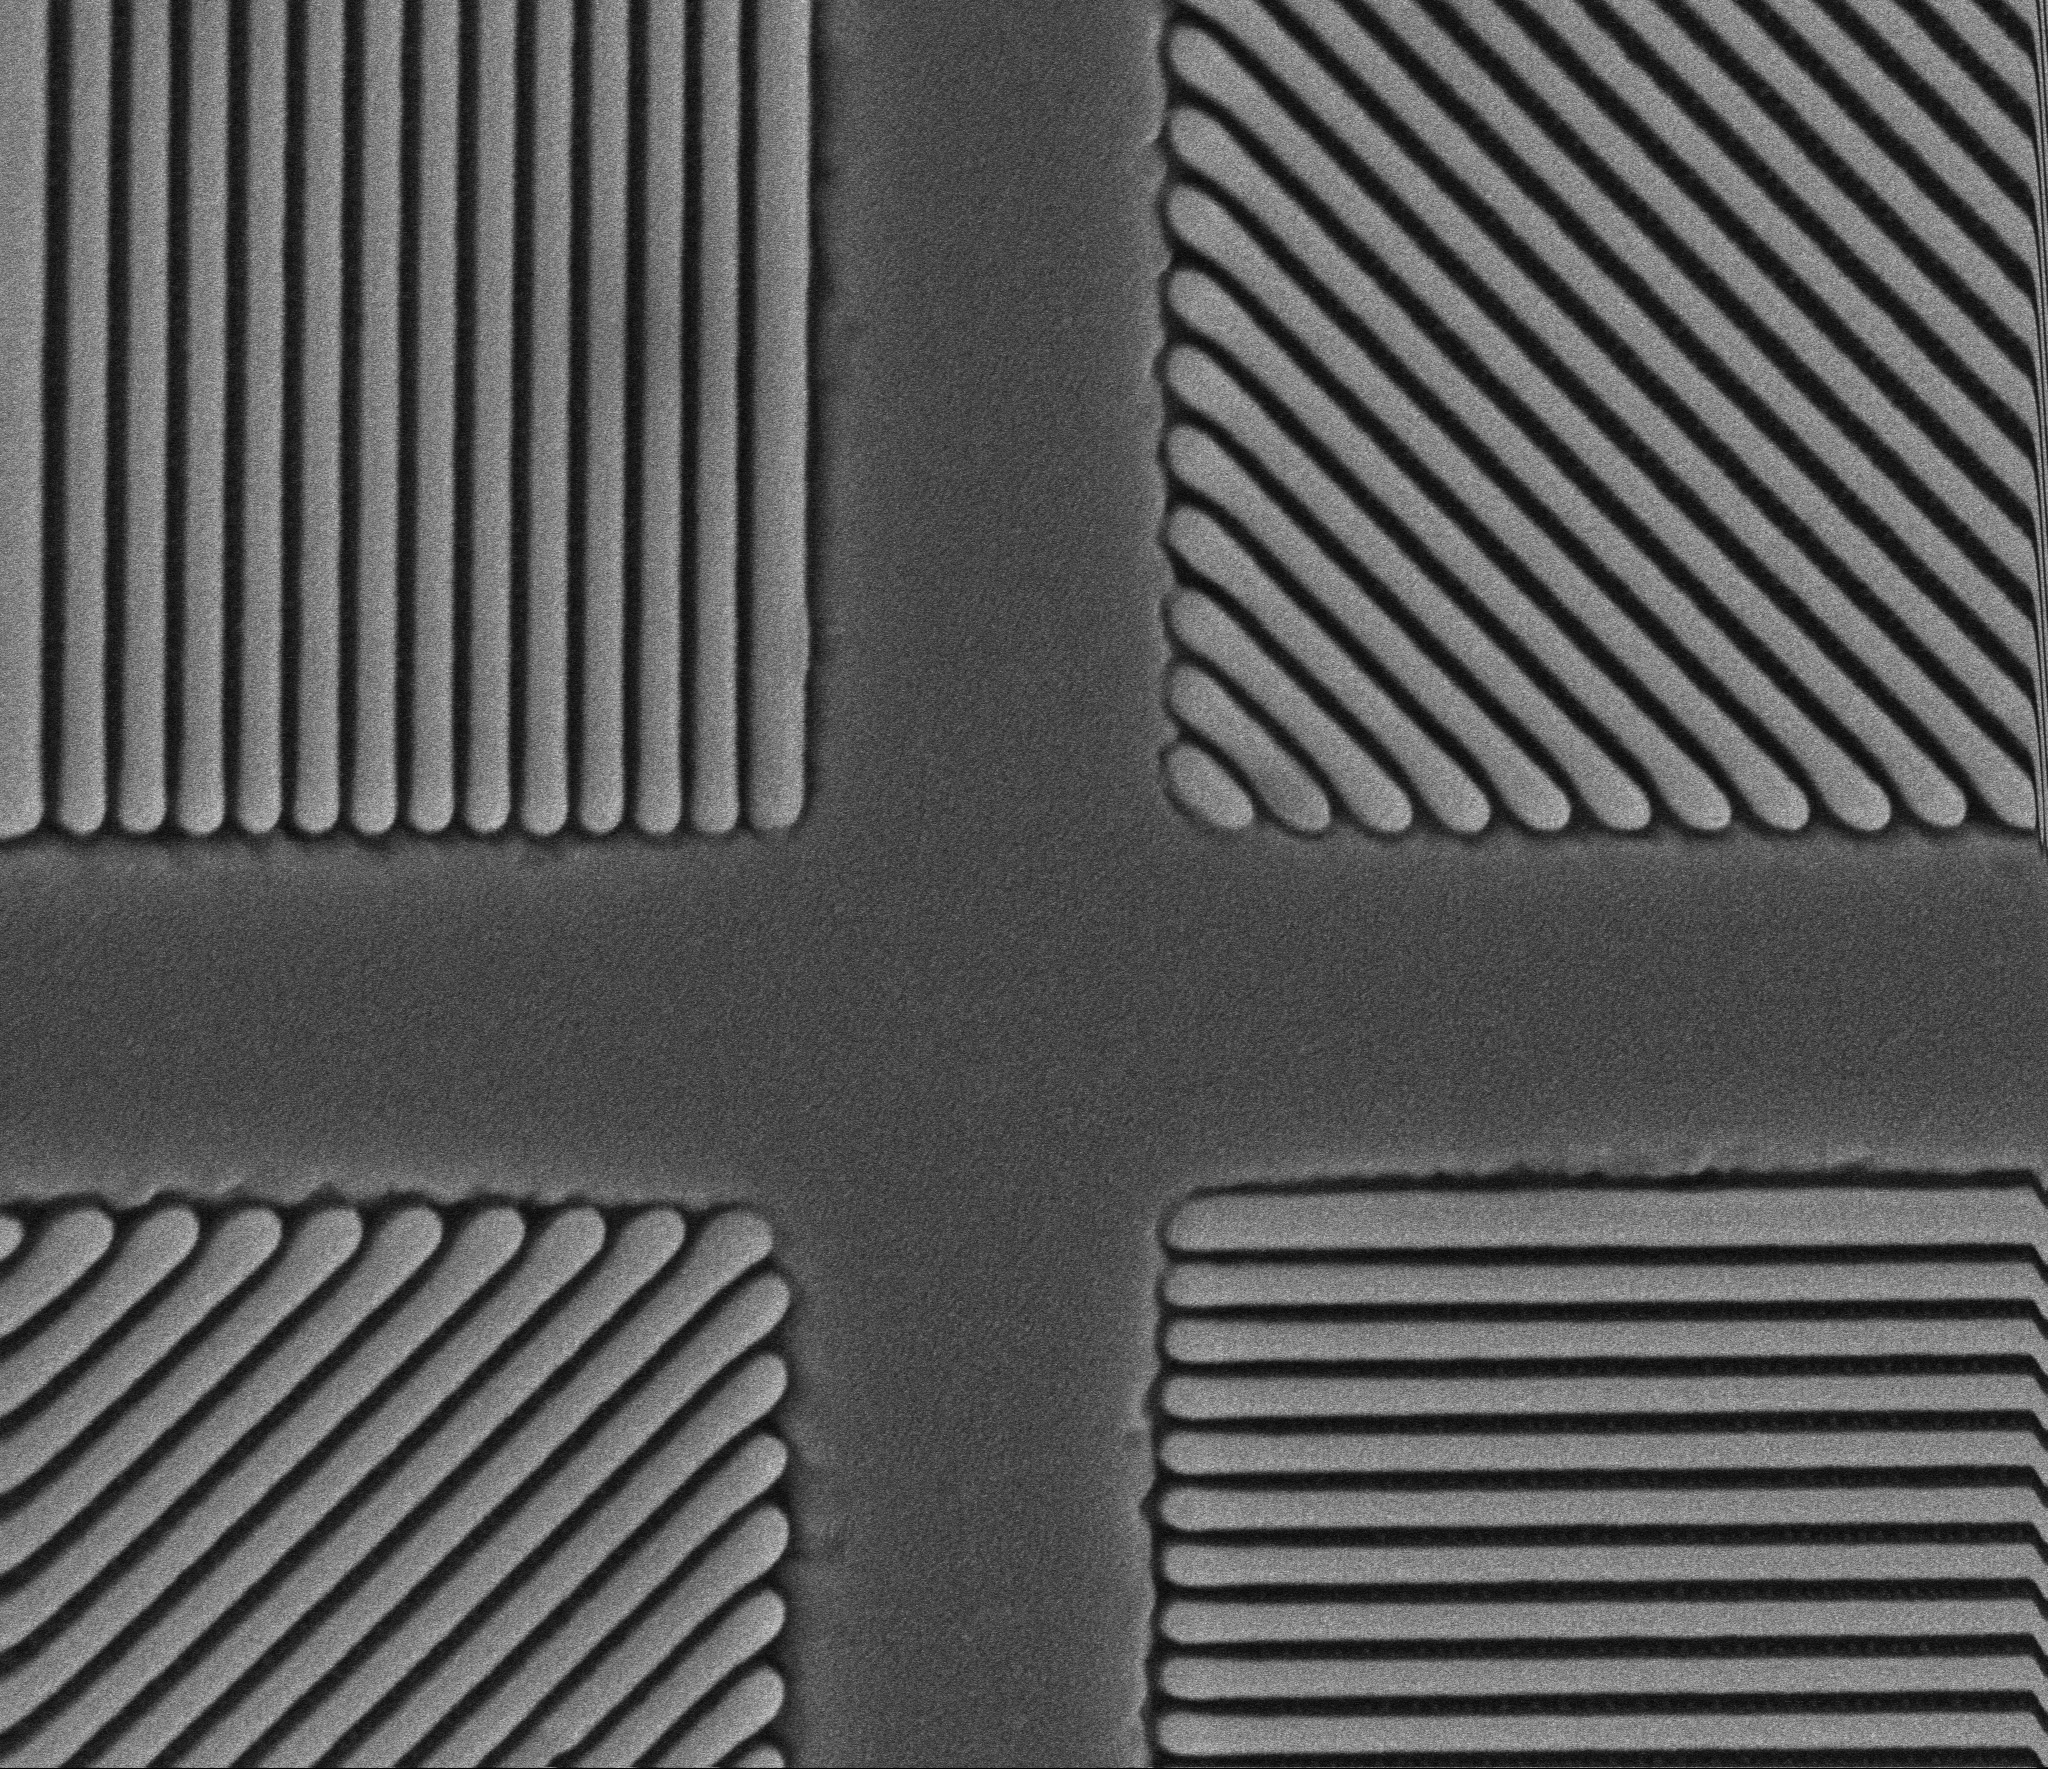 SEM image of pixelated polarizer